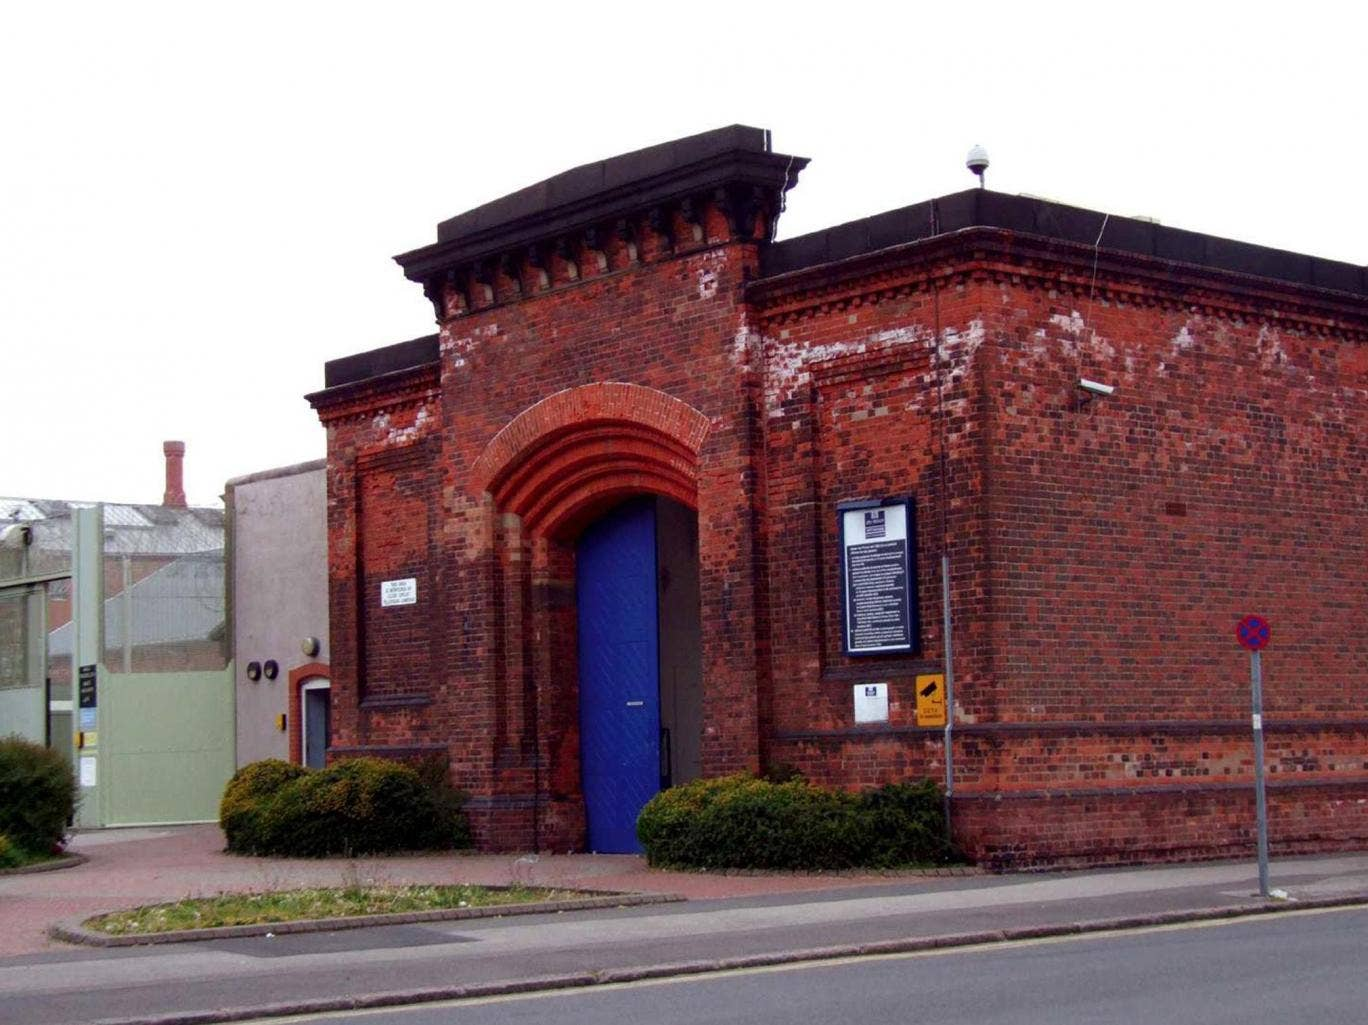 HMP Nottingham, located in the Sherwood area of Nottingham